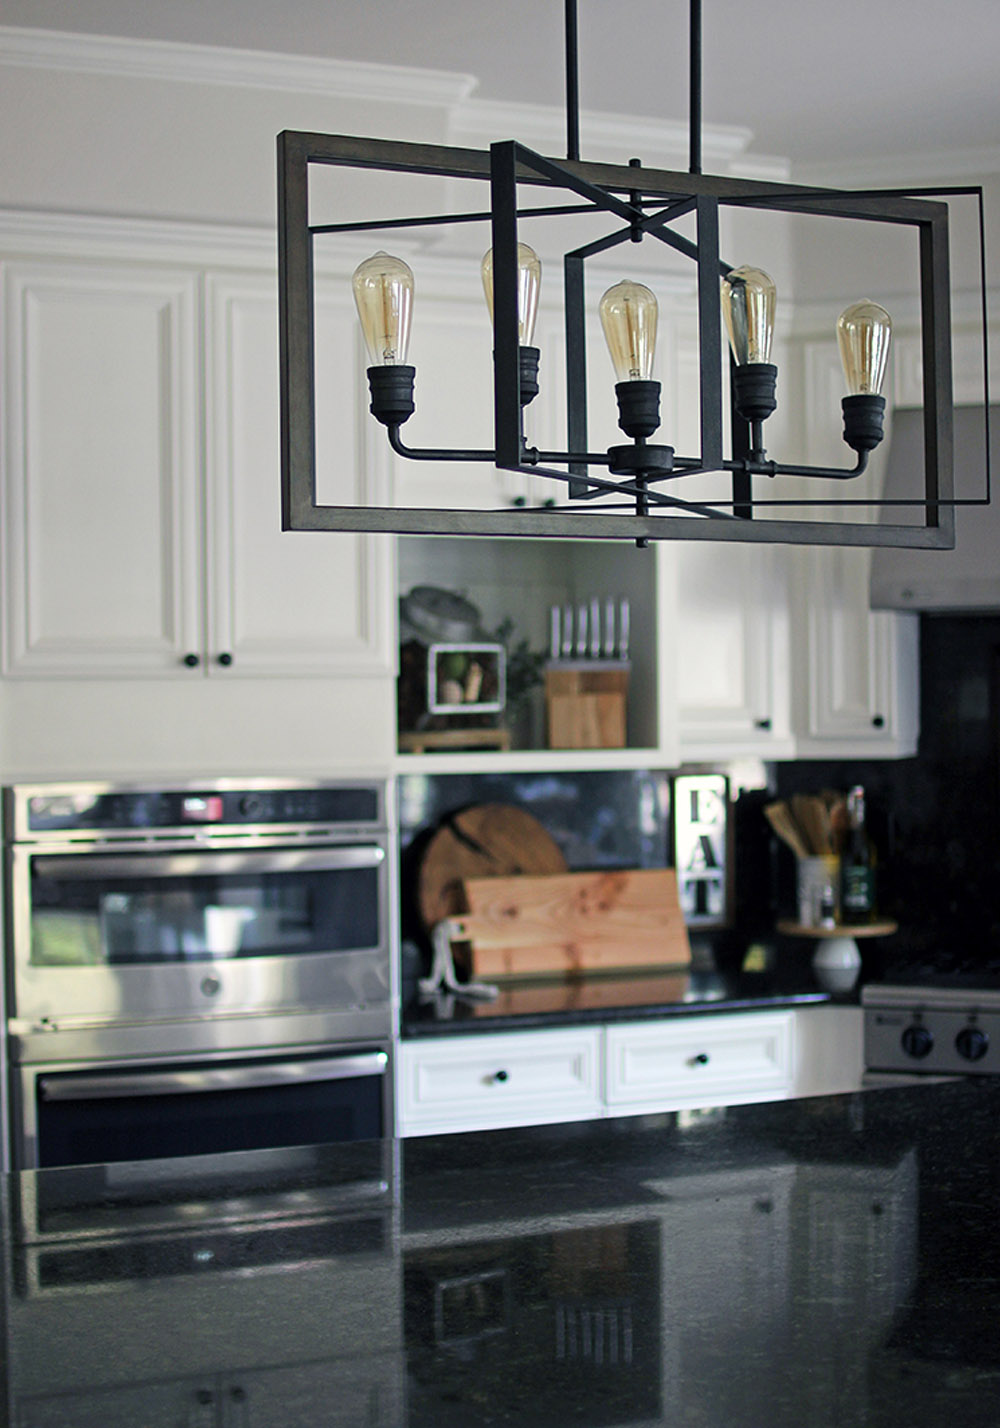 A black hanging light fixture in the middle of a kitchen with an over in the background.